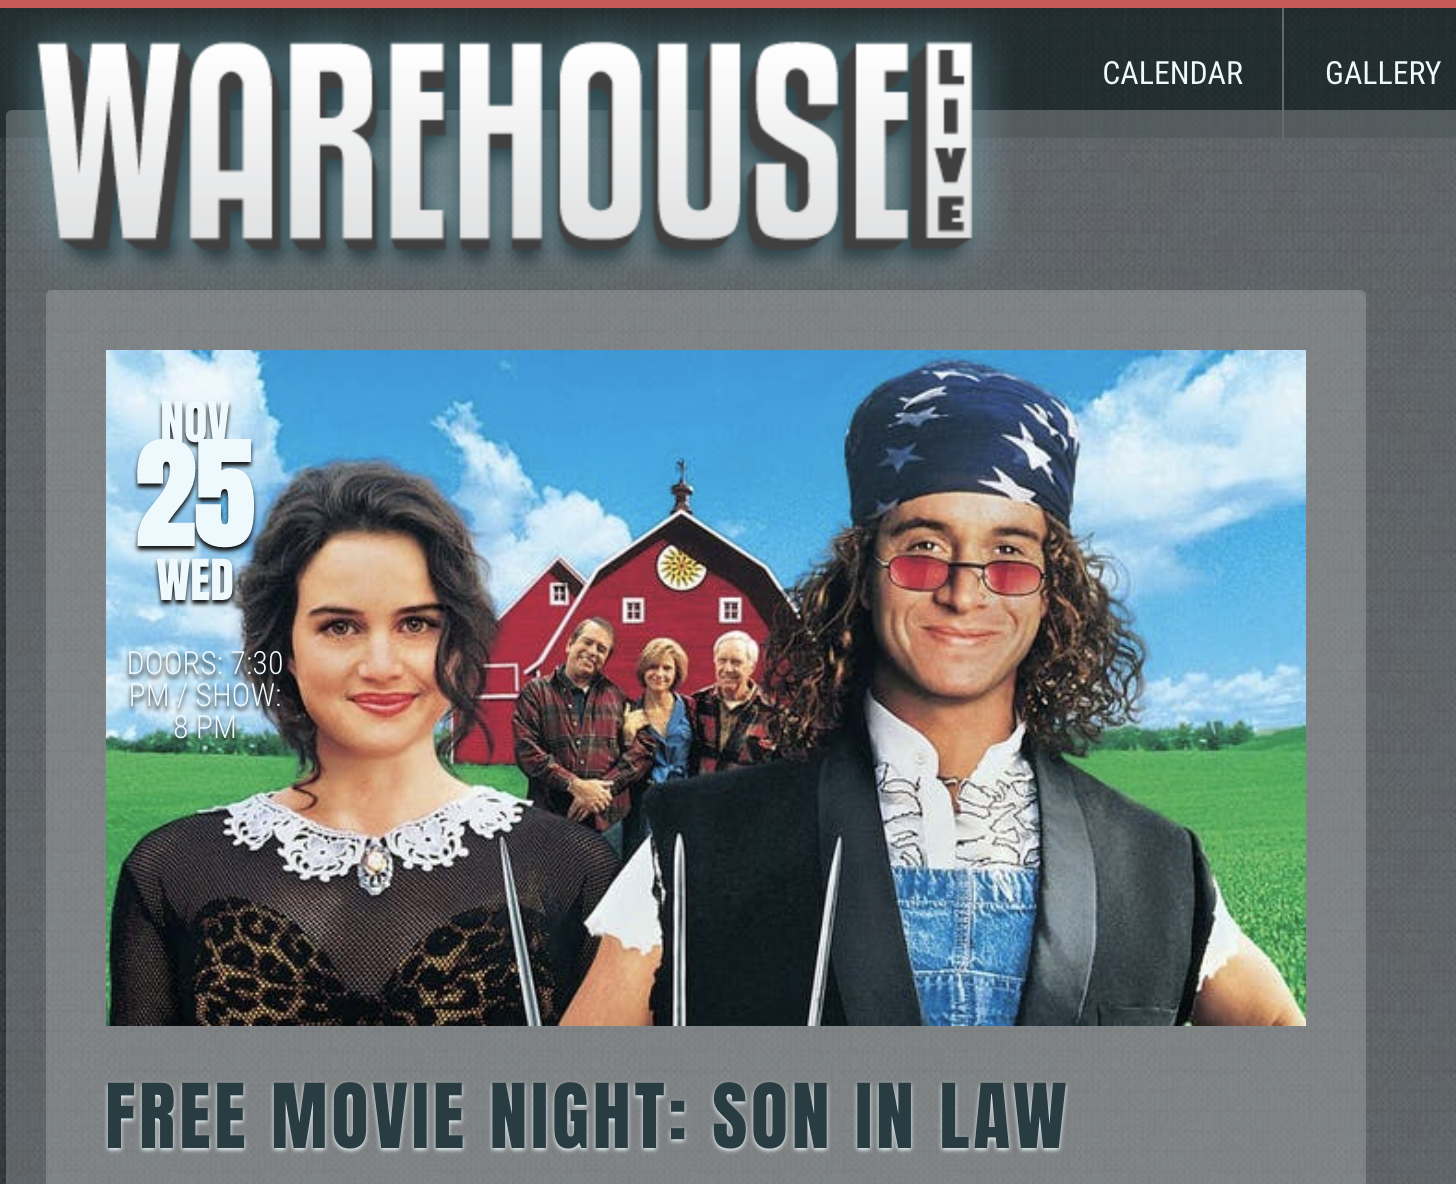 Free Movie Night: Son in Law at Warehouse Live